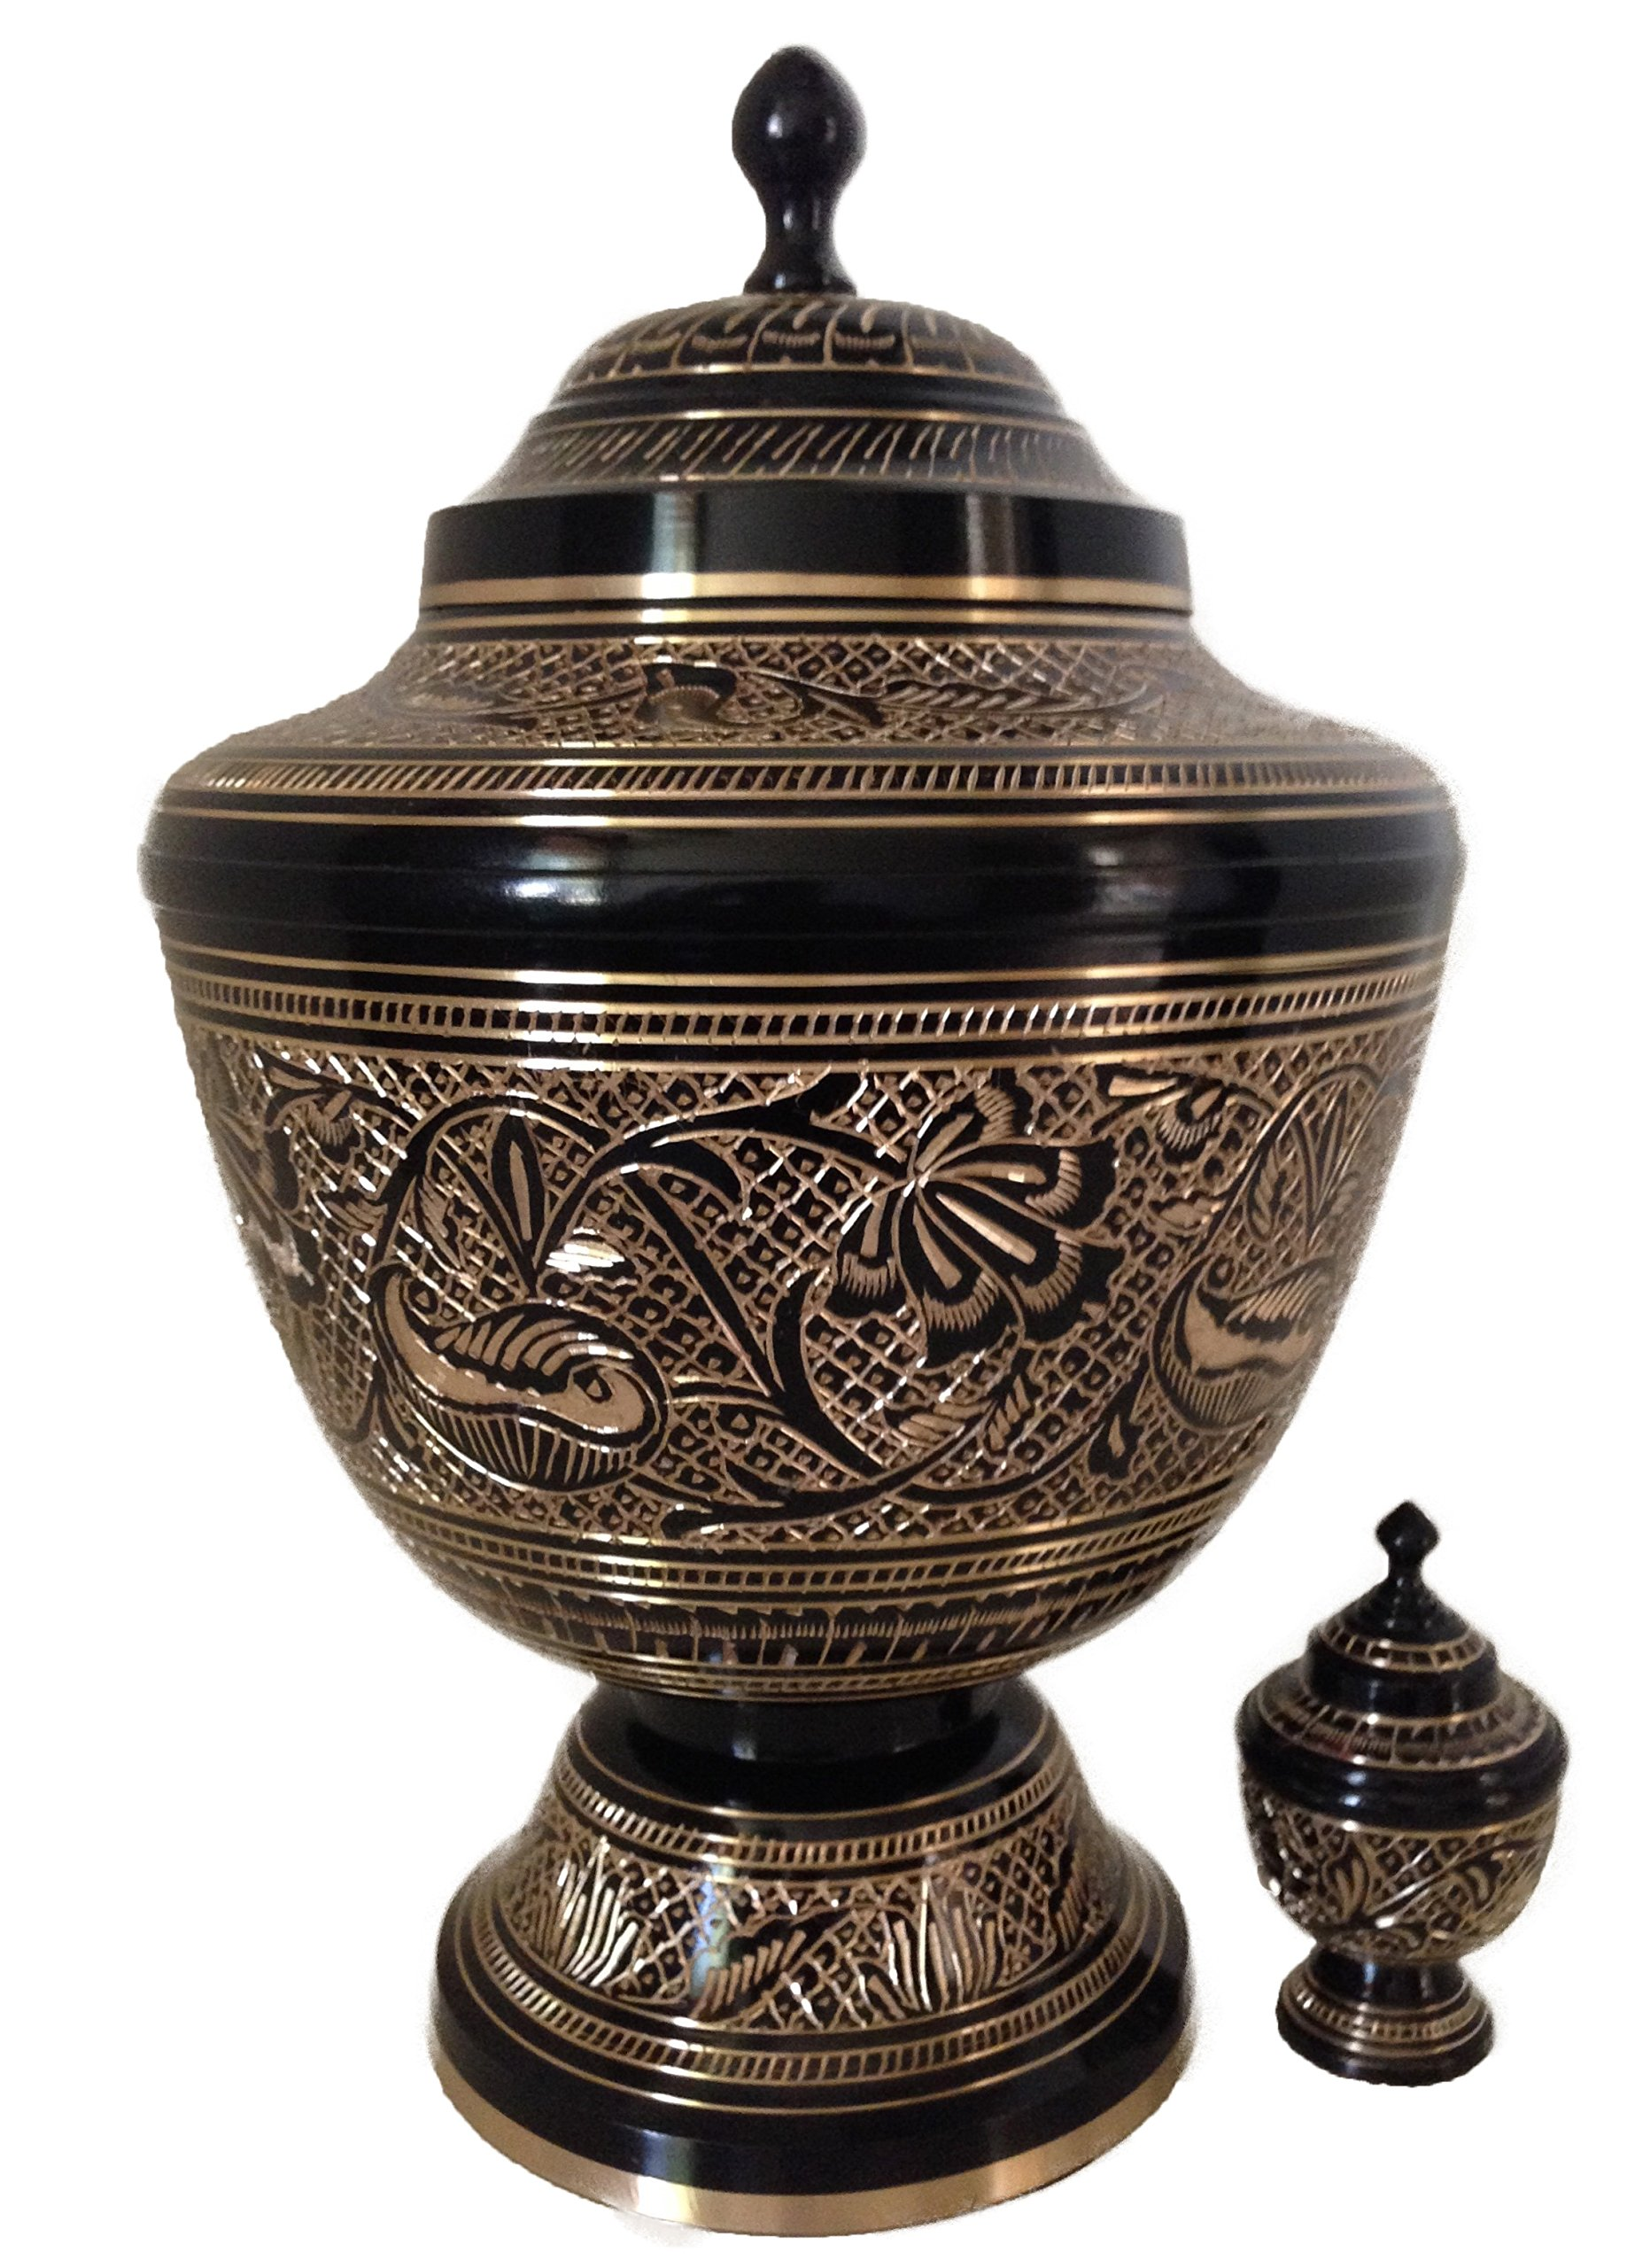 New World Accents Cremation Urn, Solid Brass, Black and Gold Funeral Urns W/keepsake